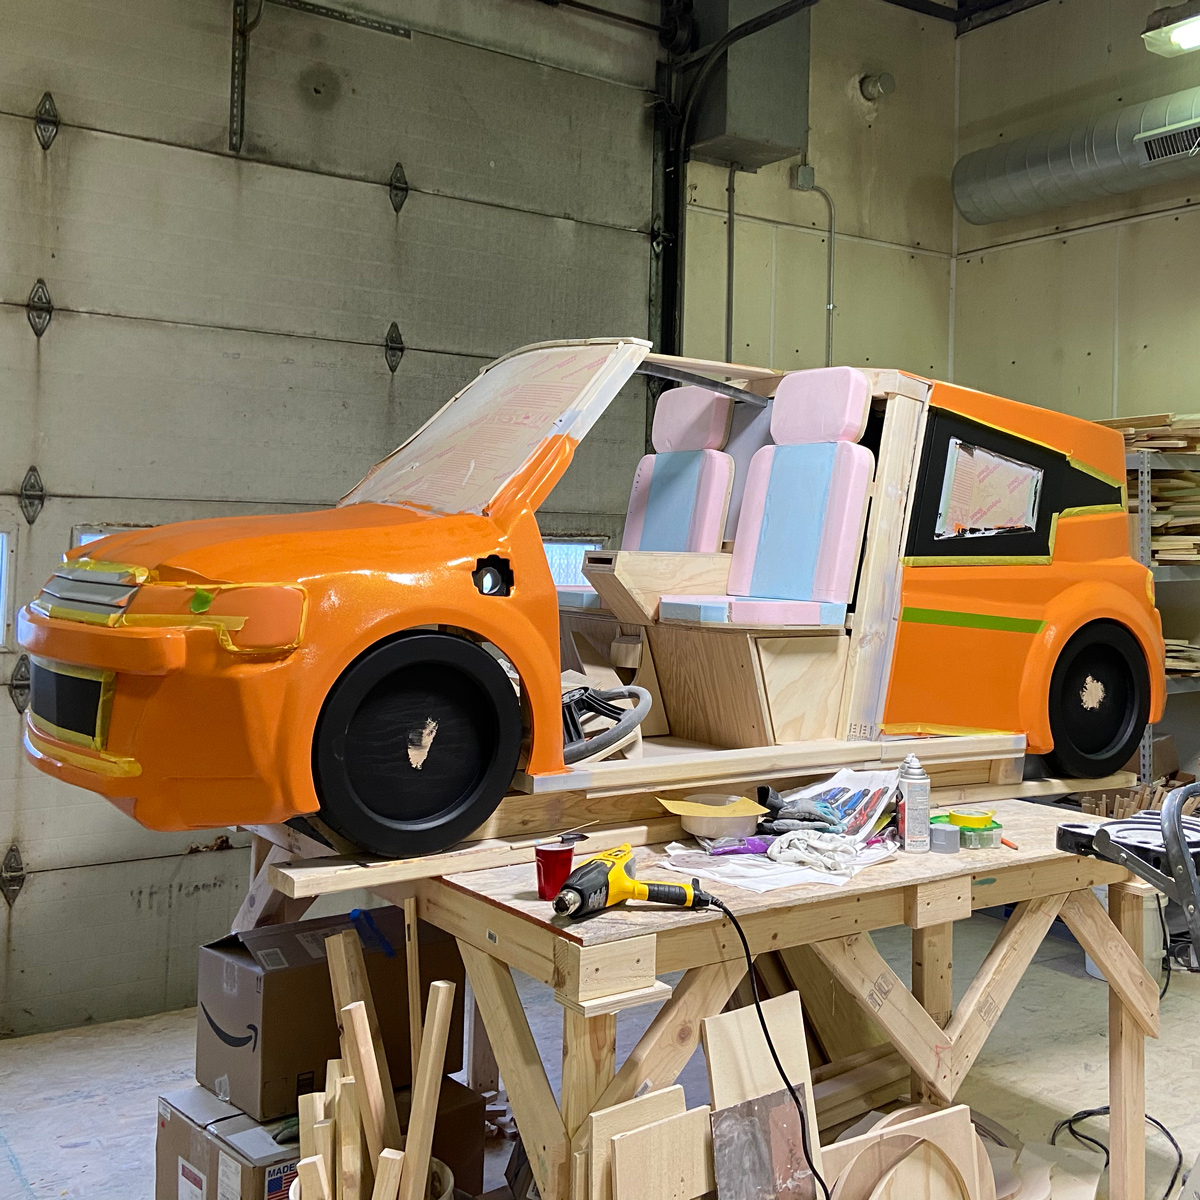 Fresh paint on the EV (Electric Vehicle)